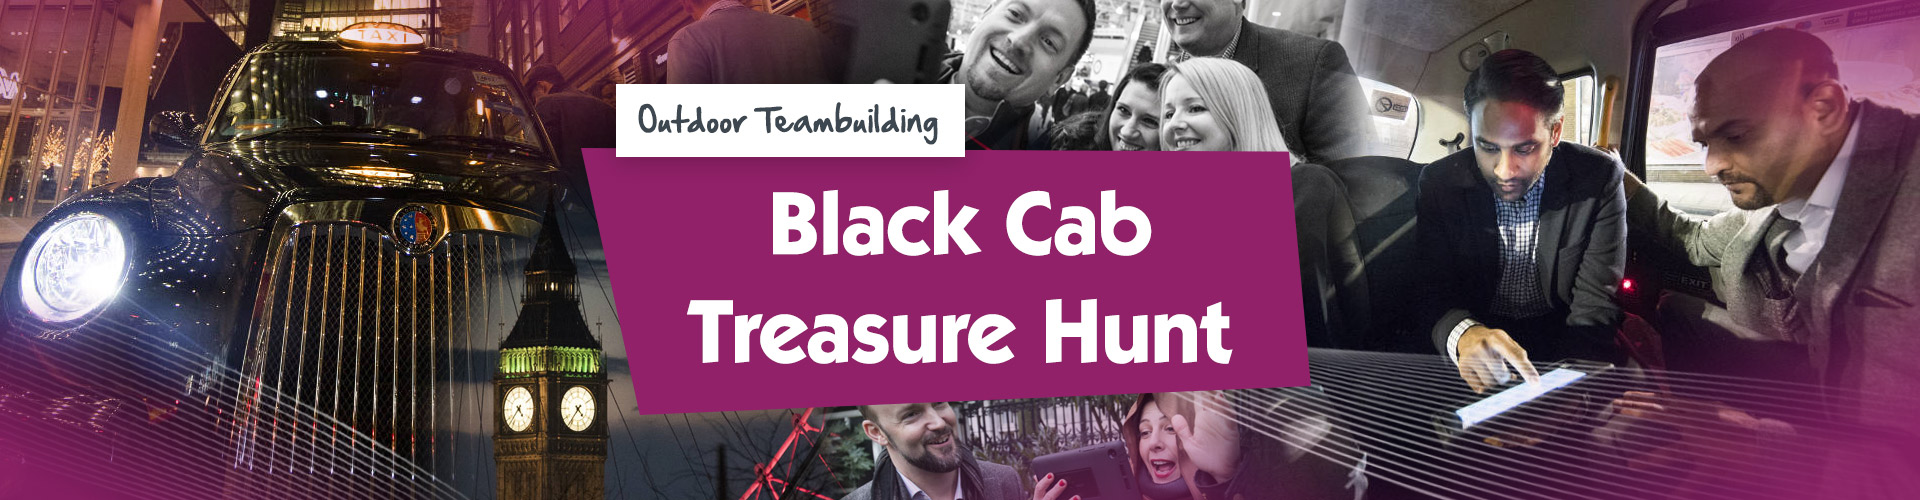 Teambuilding | Black Cab Treasure Hunt